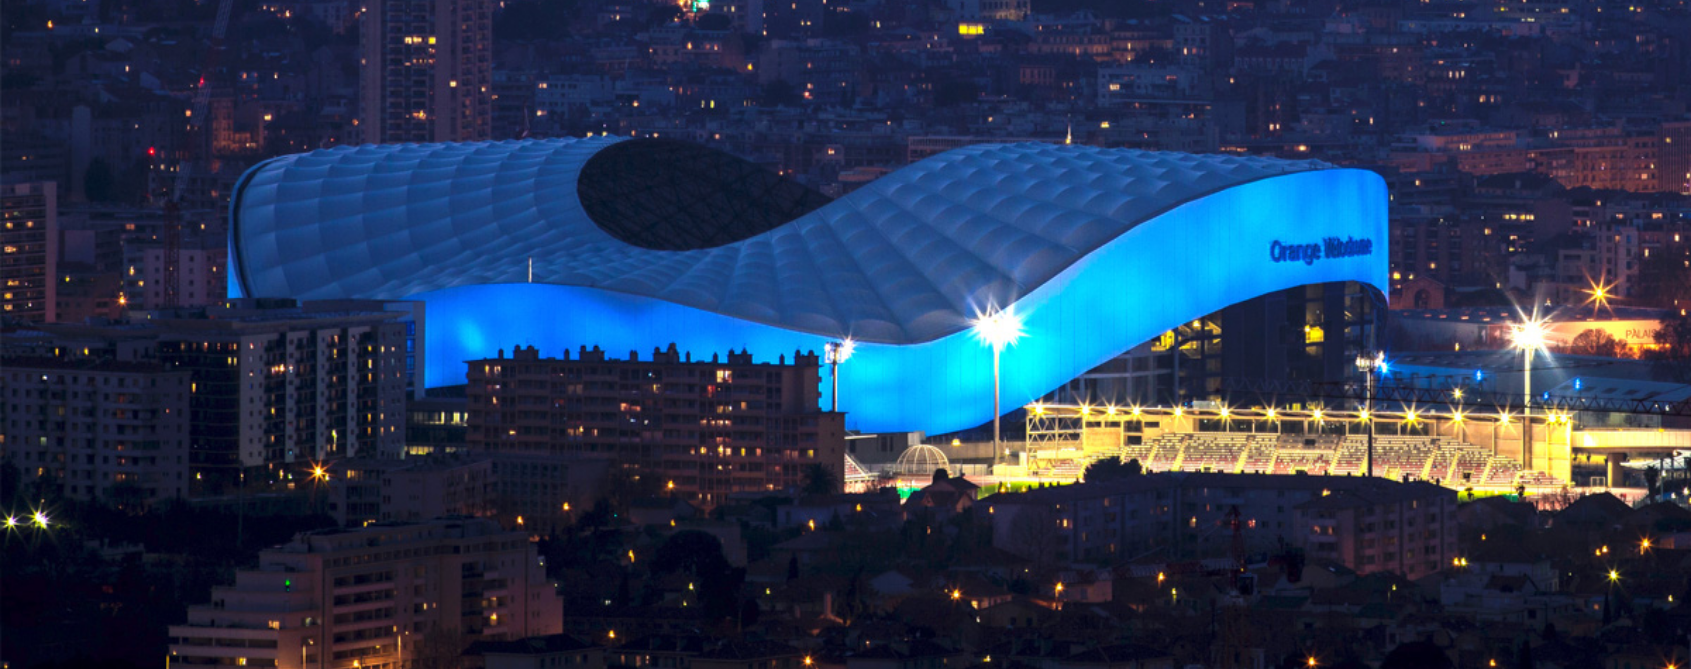 View of the OM stadium Le Vélodrôme by night